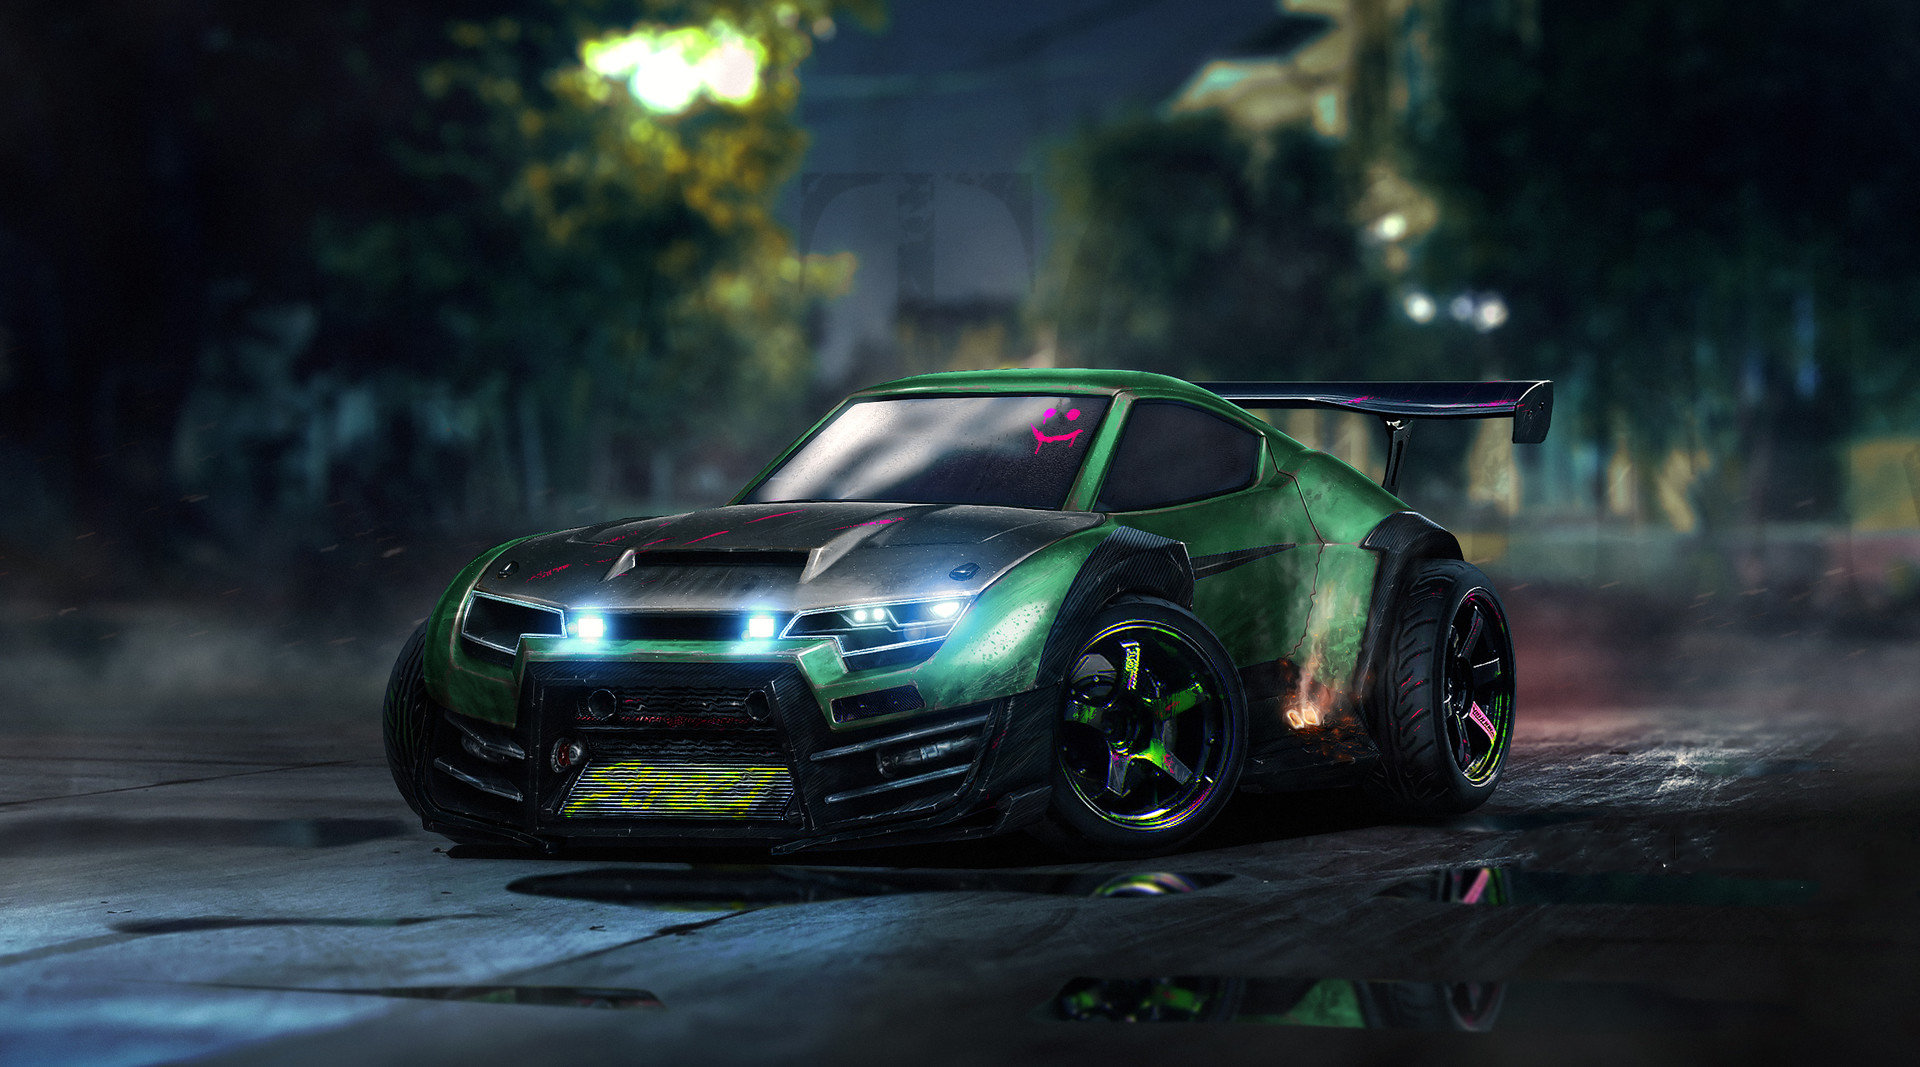 Fondos de pantalla Takumi RX-T de Rocket League Artwork